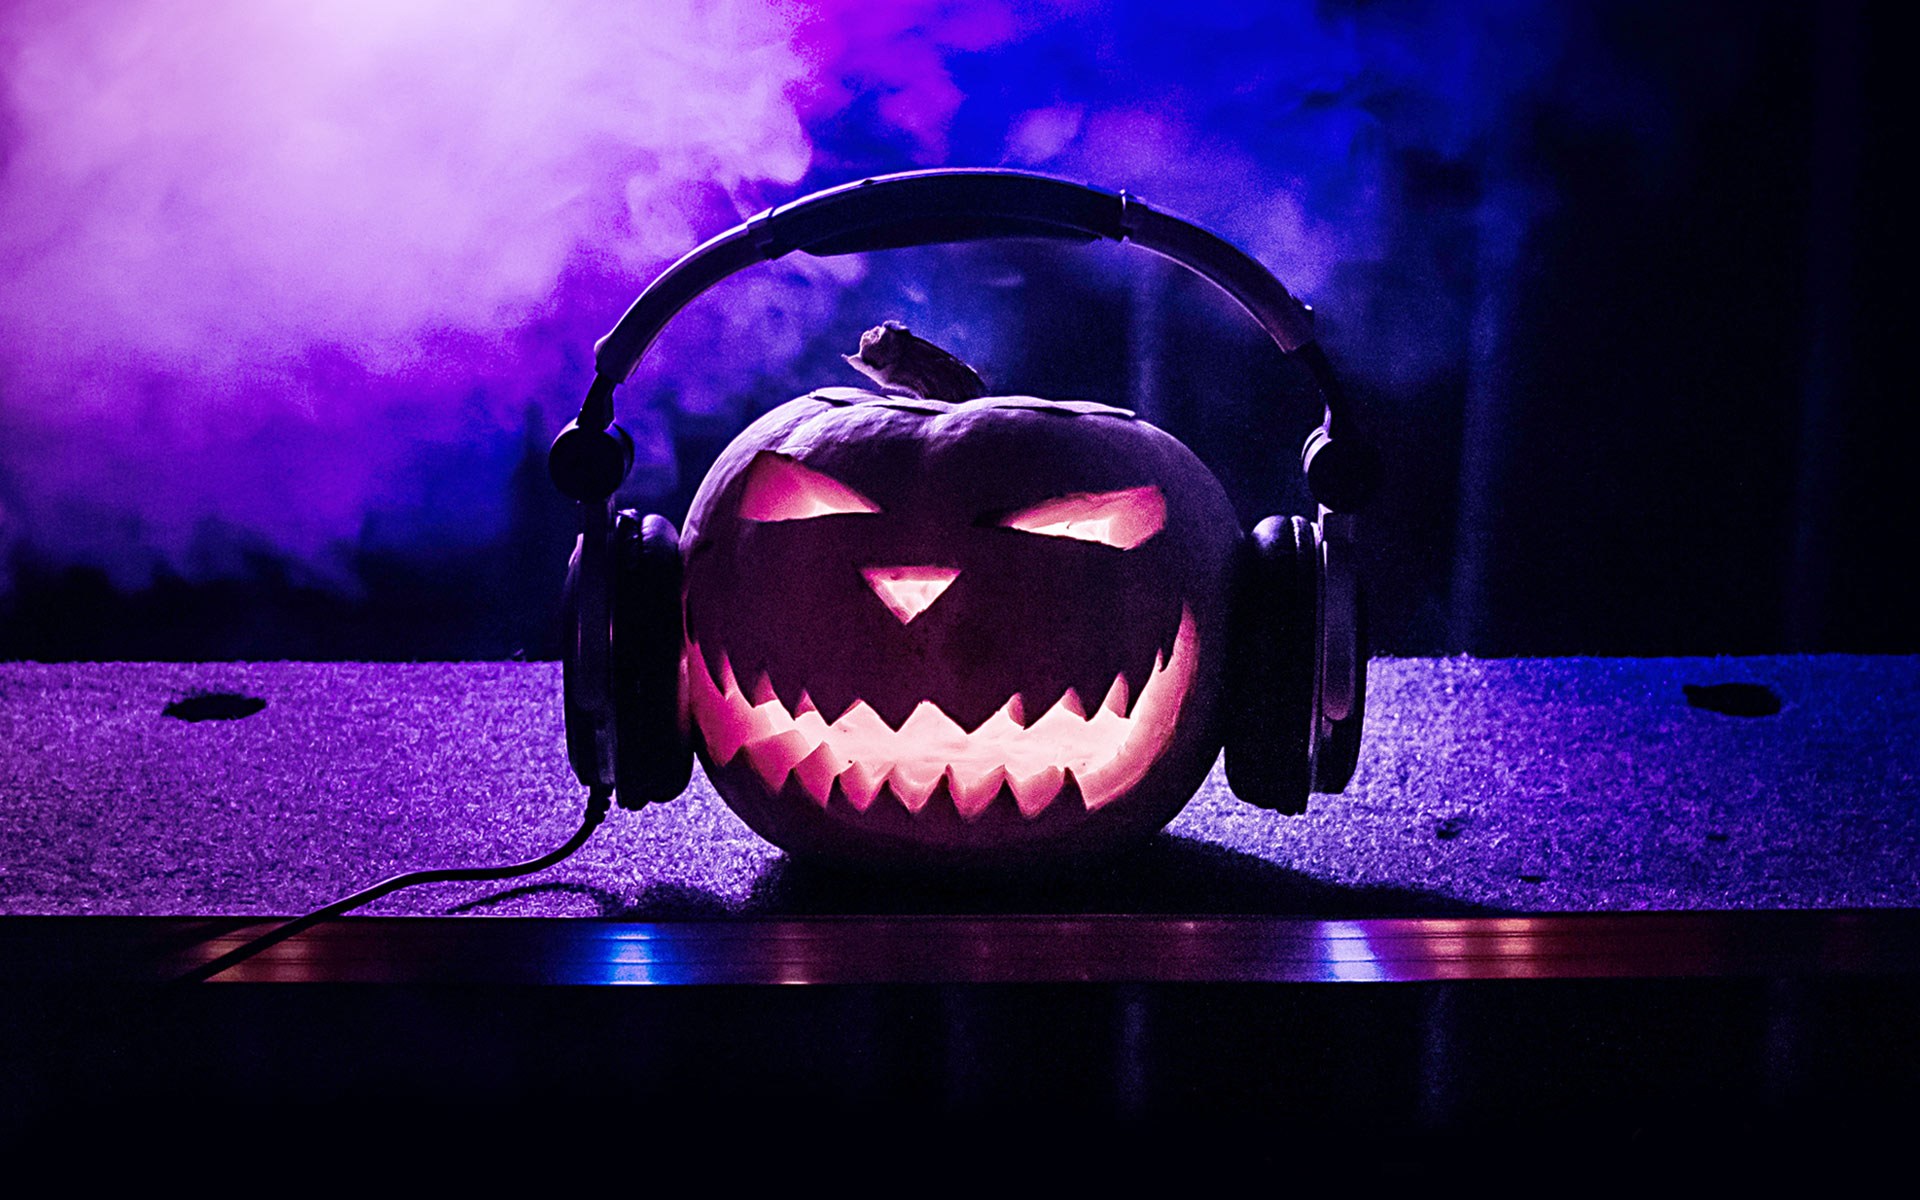 An illuminated jack o' lantern wearing headphones sitting on top of a soundboard surrounded by purple smoke.